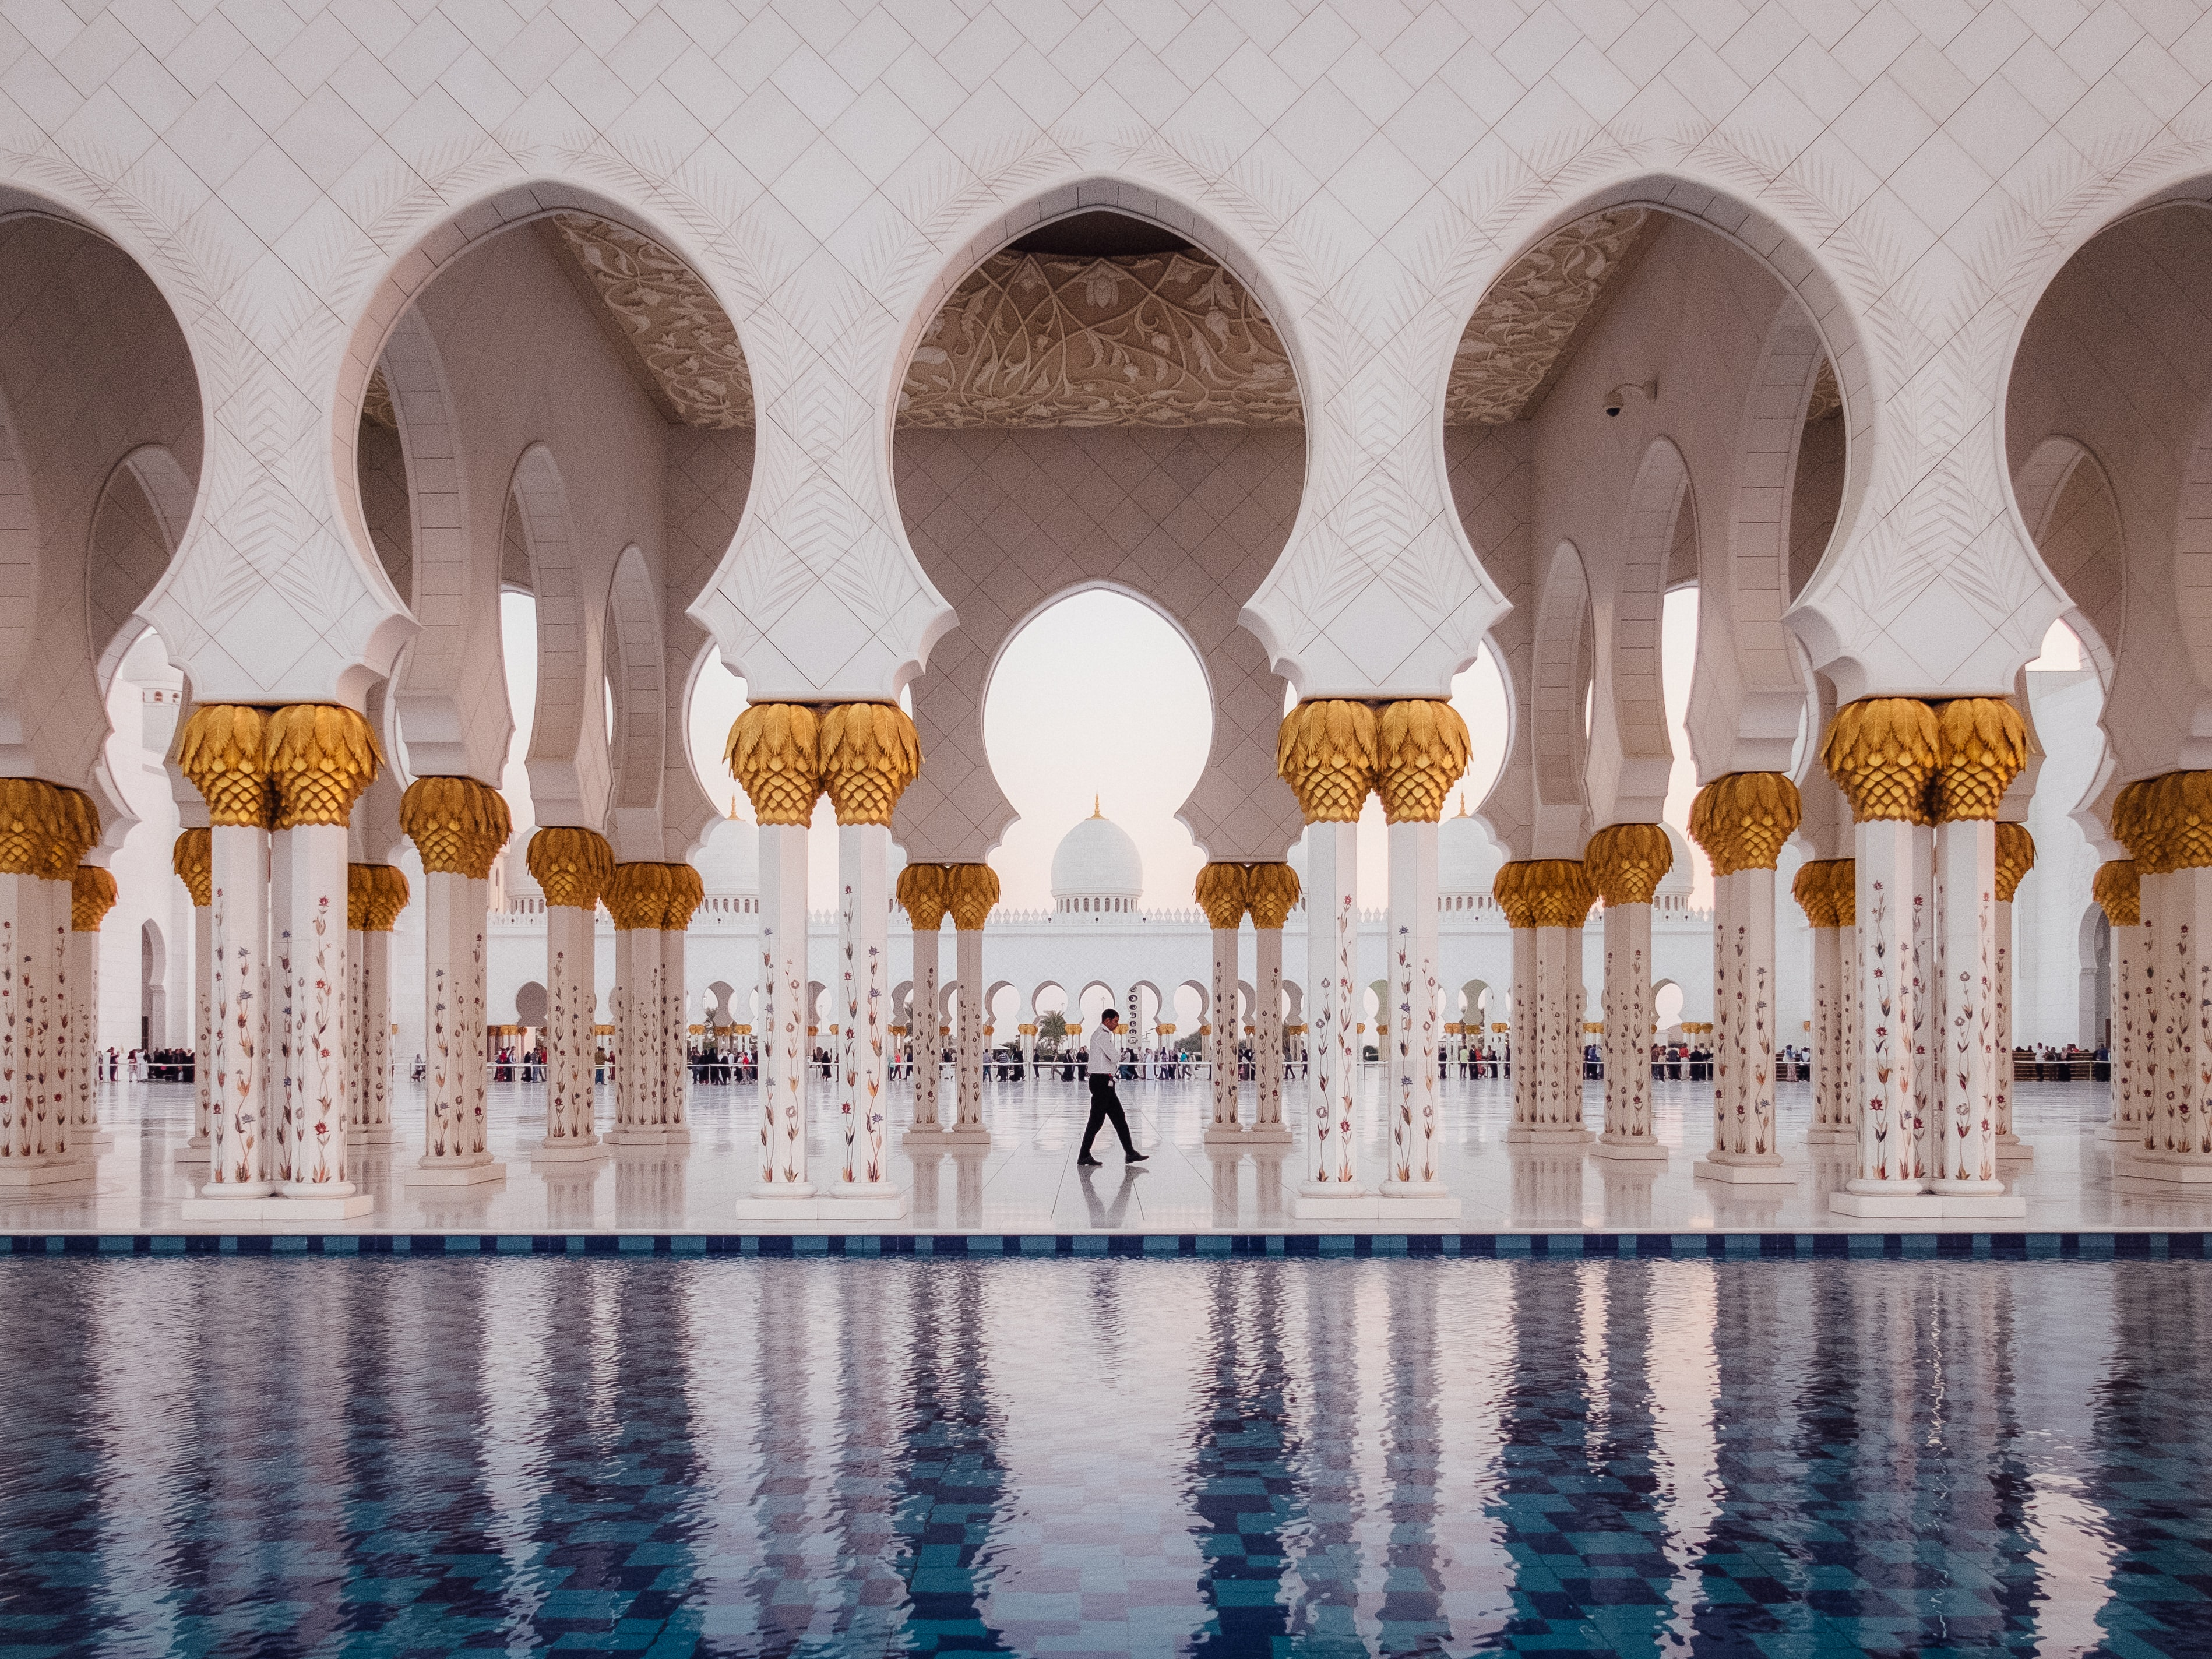 White arches and golden pillars make patterns by a reflection pool in a mosque